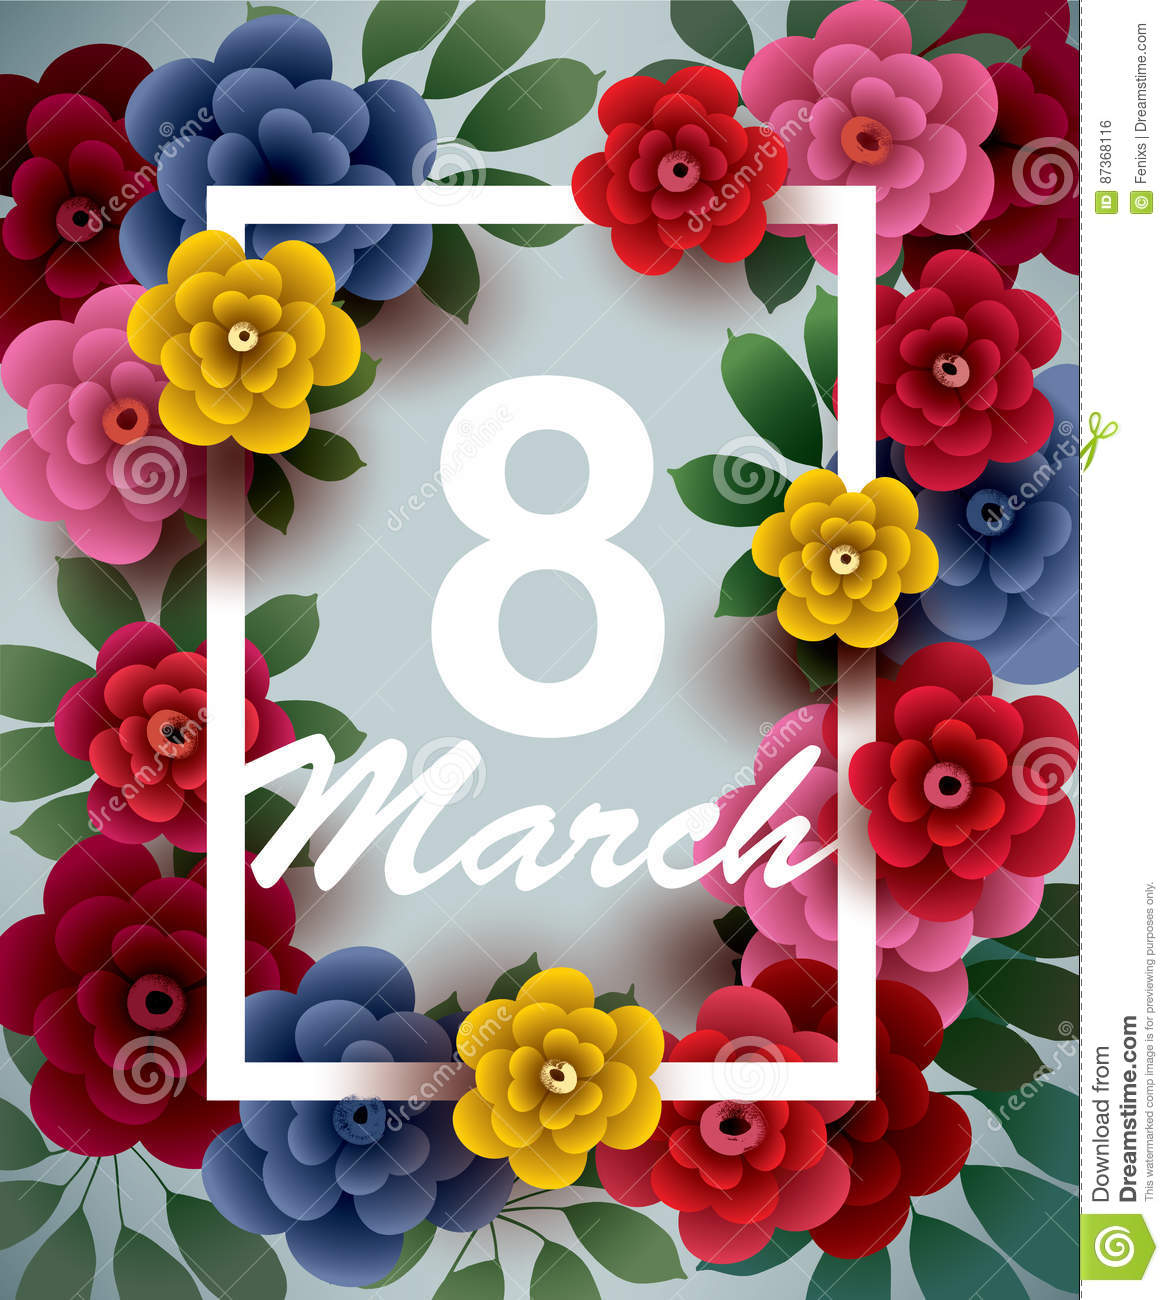 8 March. Happy Women`s Day card with flowers and frame